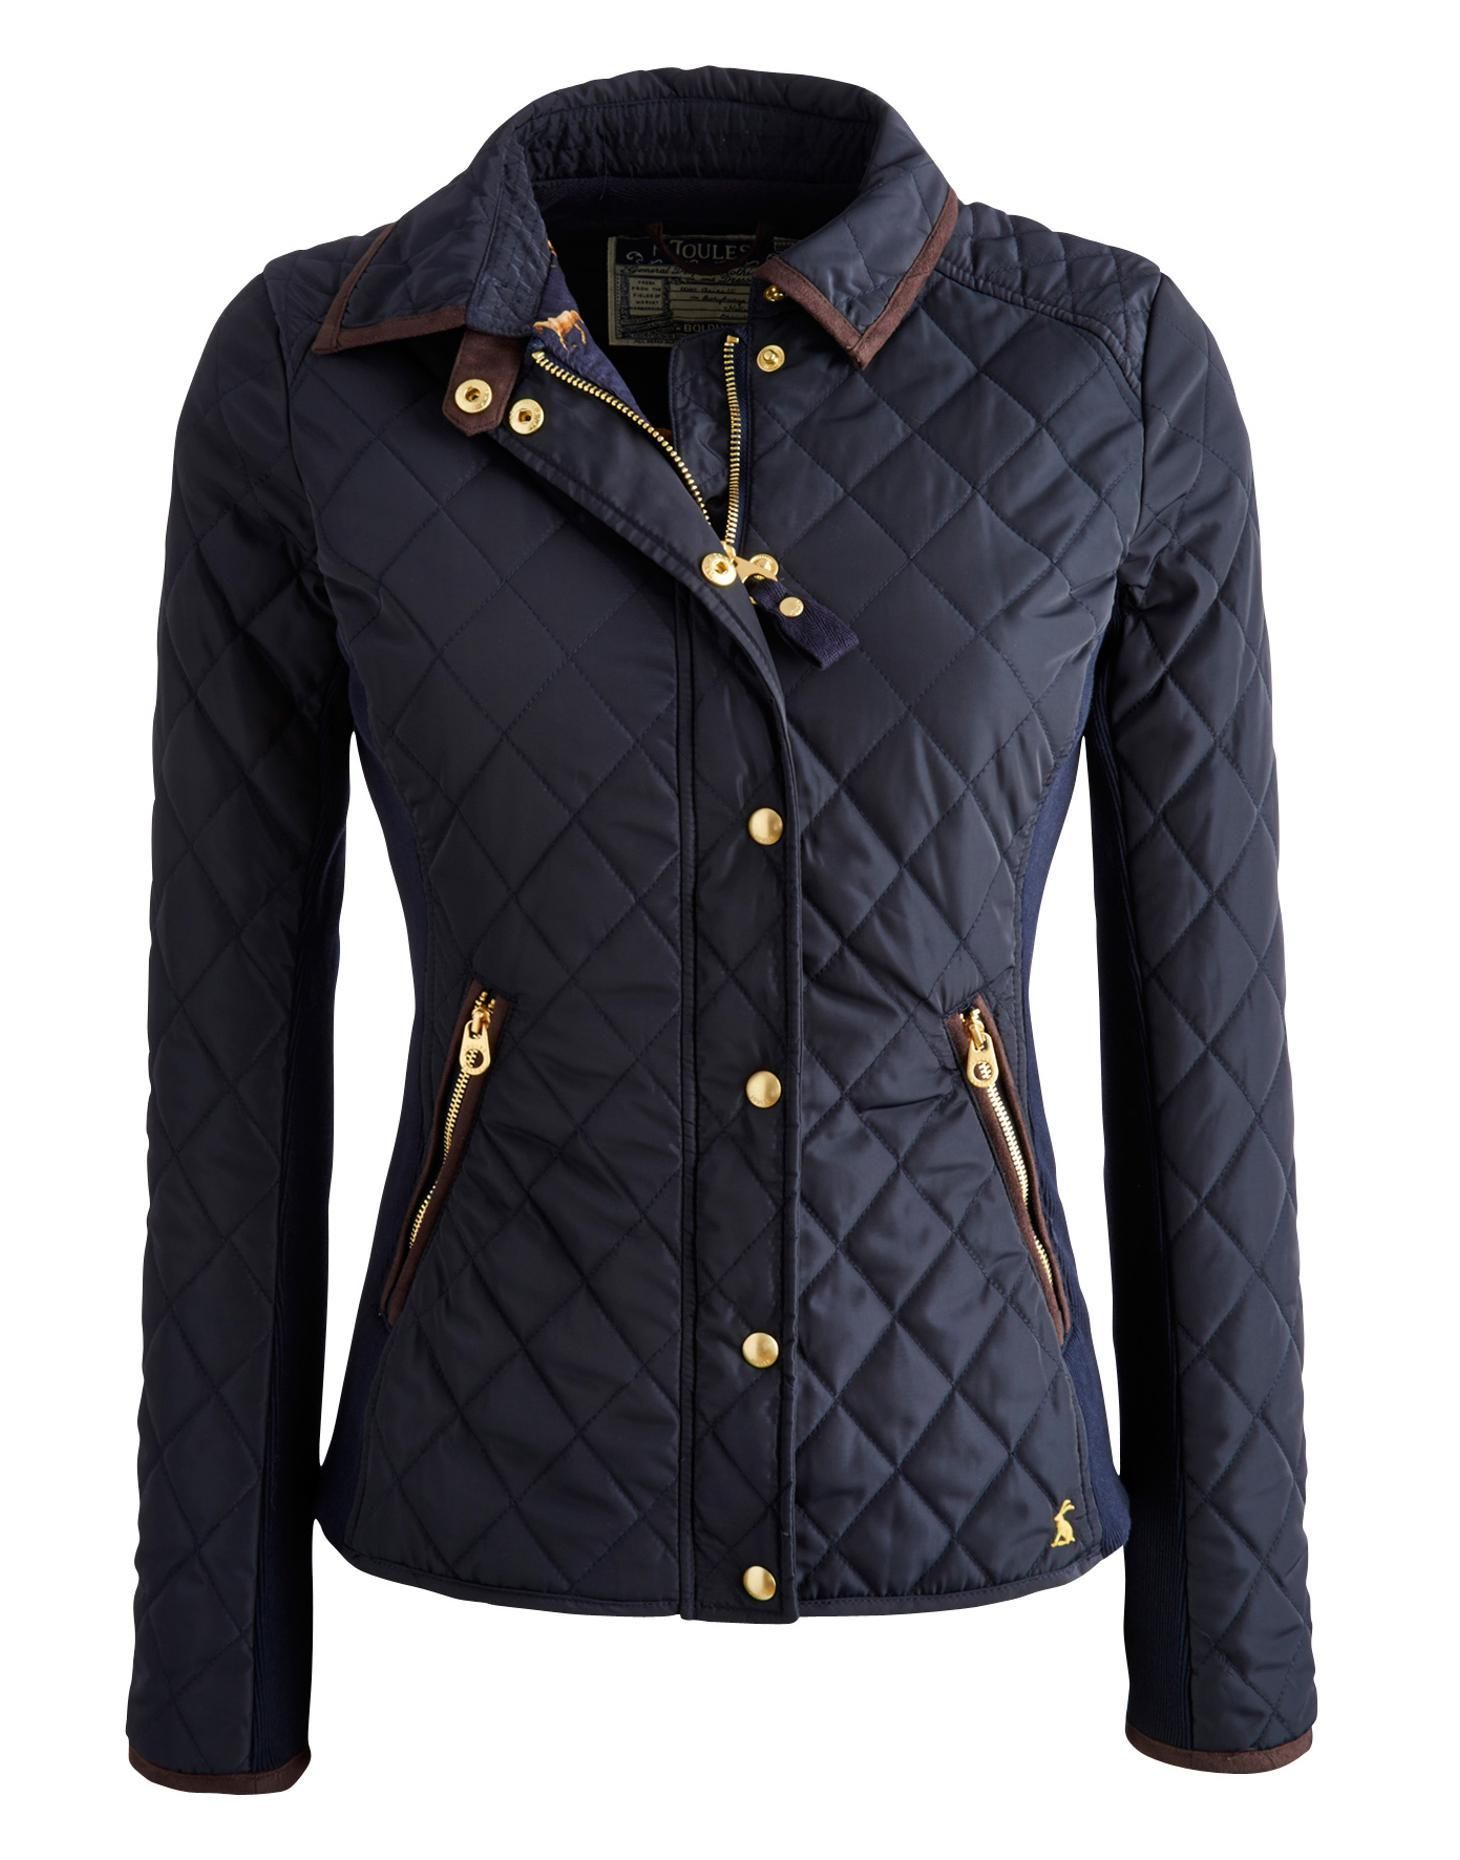 3677ace72 CAVENDISH Women's Jersey Ribbed Quilted Jacket | My Style in 2019 ...